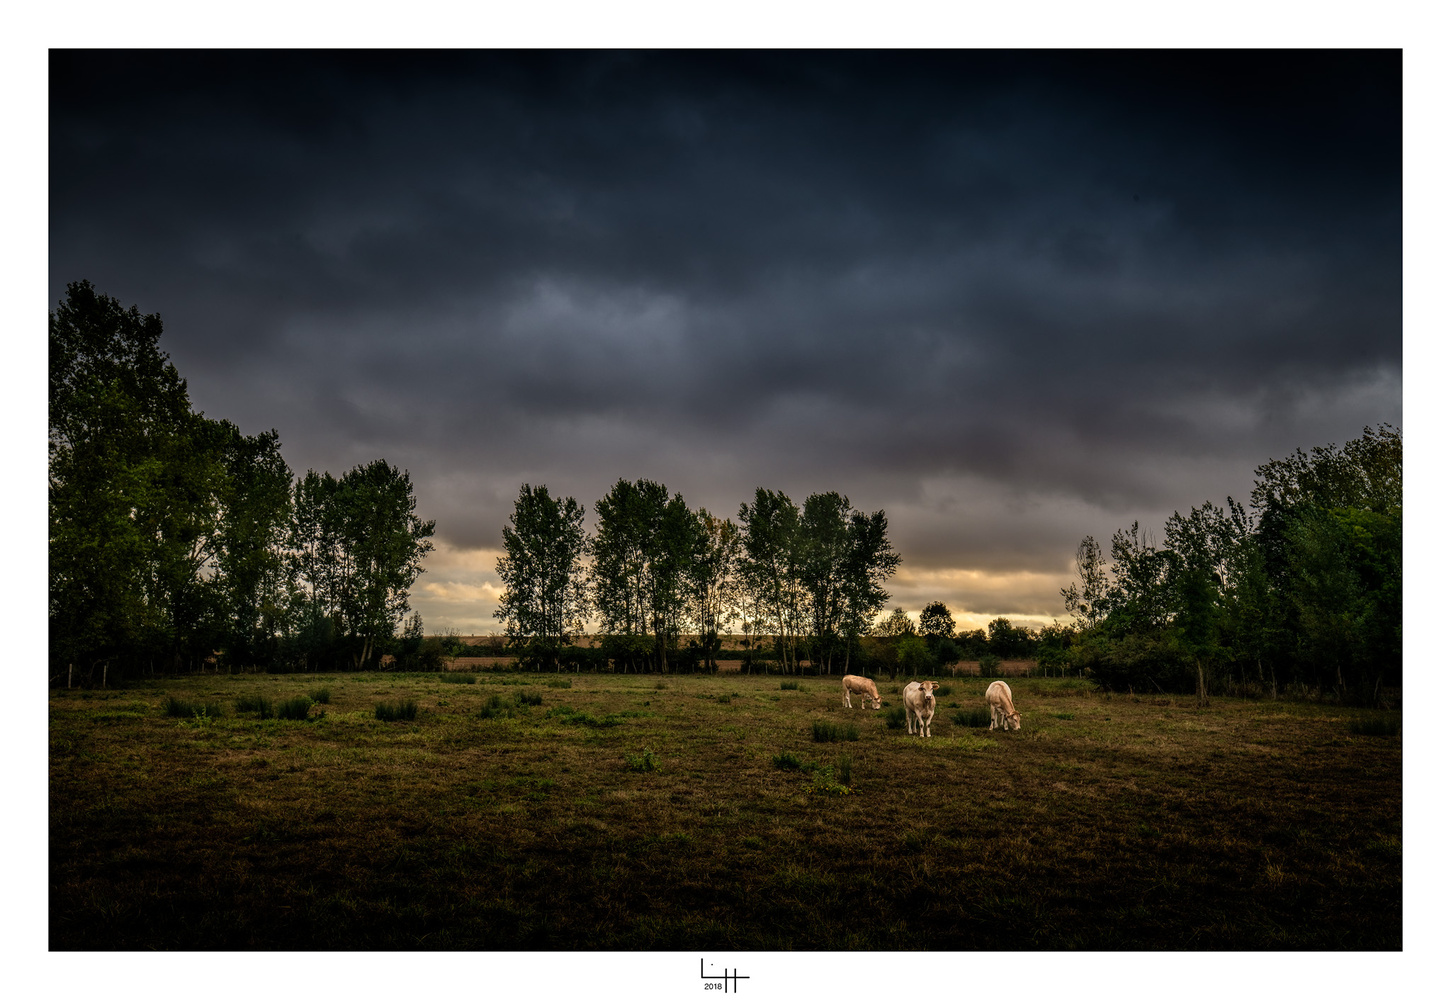 Trois Vaches by Lionel HUG